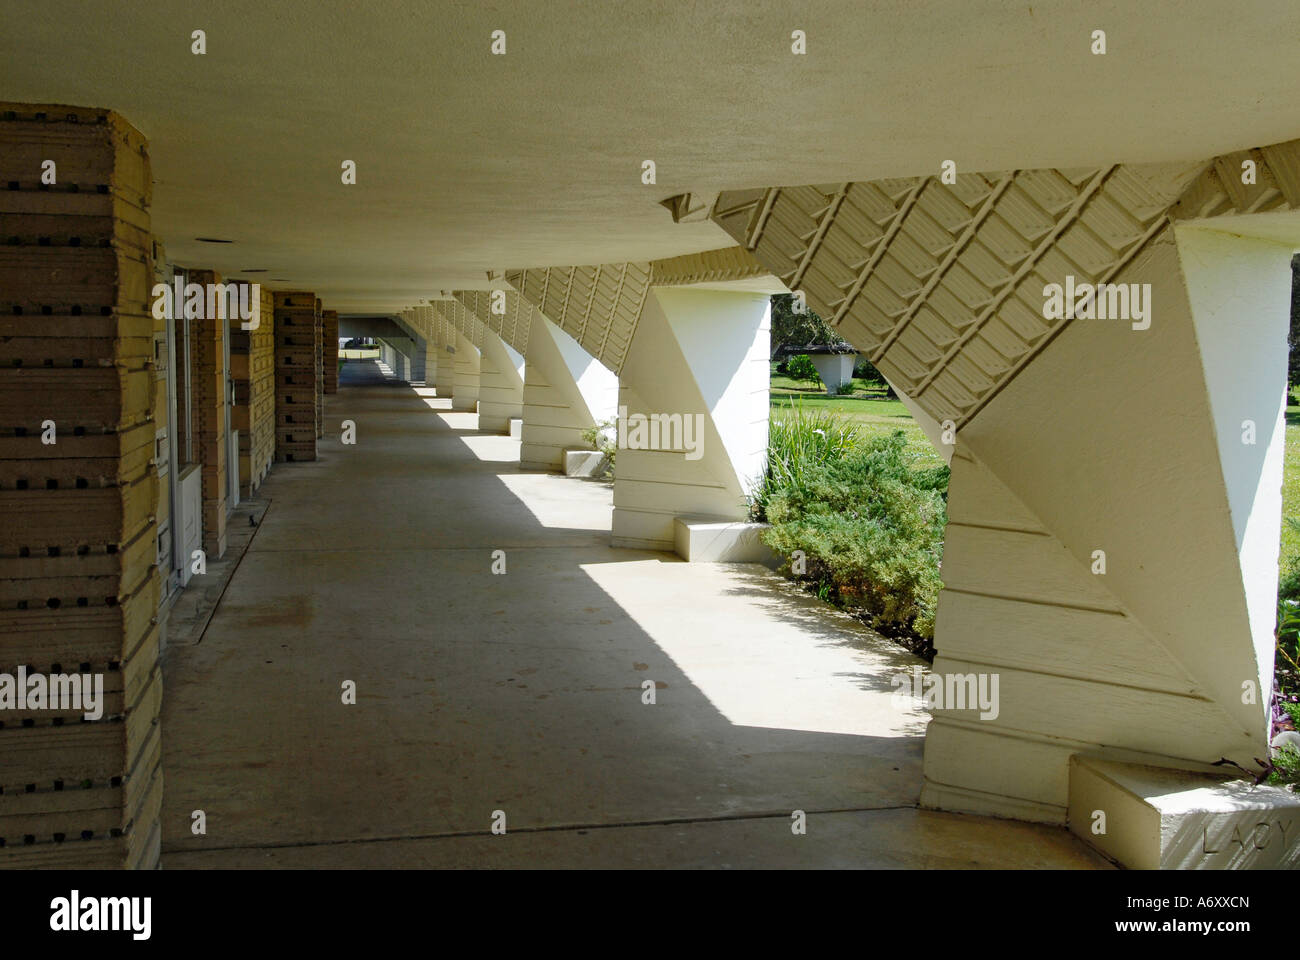 Campus At Florida Southern College FSC Frank Lloyd Wright Architecture At  Lakeland Central Florida United States